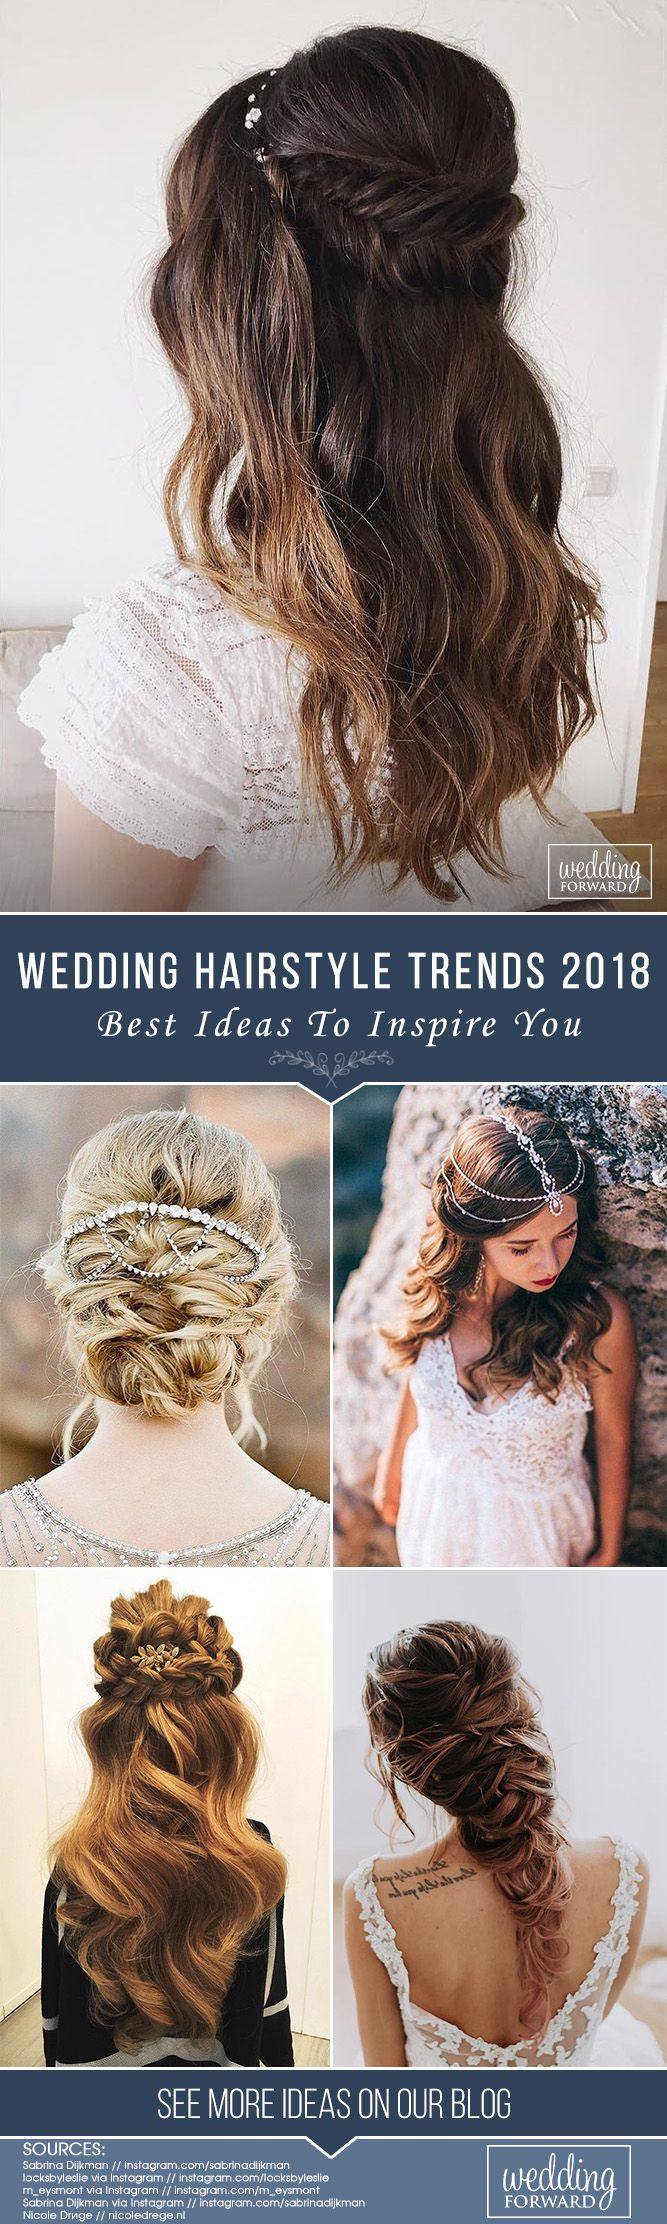 Bridal Hairstyles Best Wedding Hairstyle Trends 2018 It Is